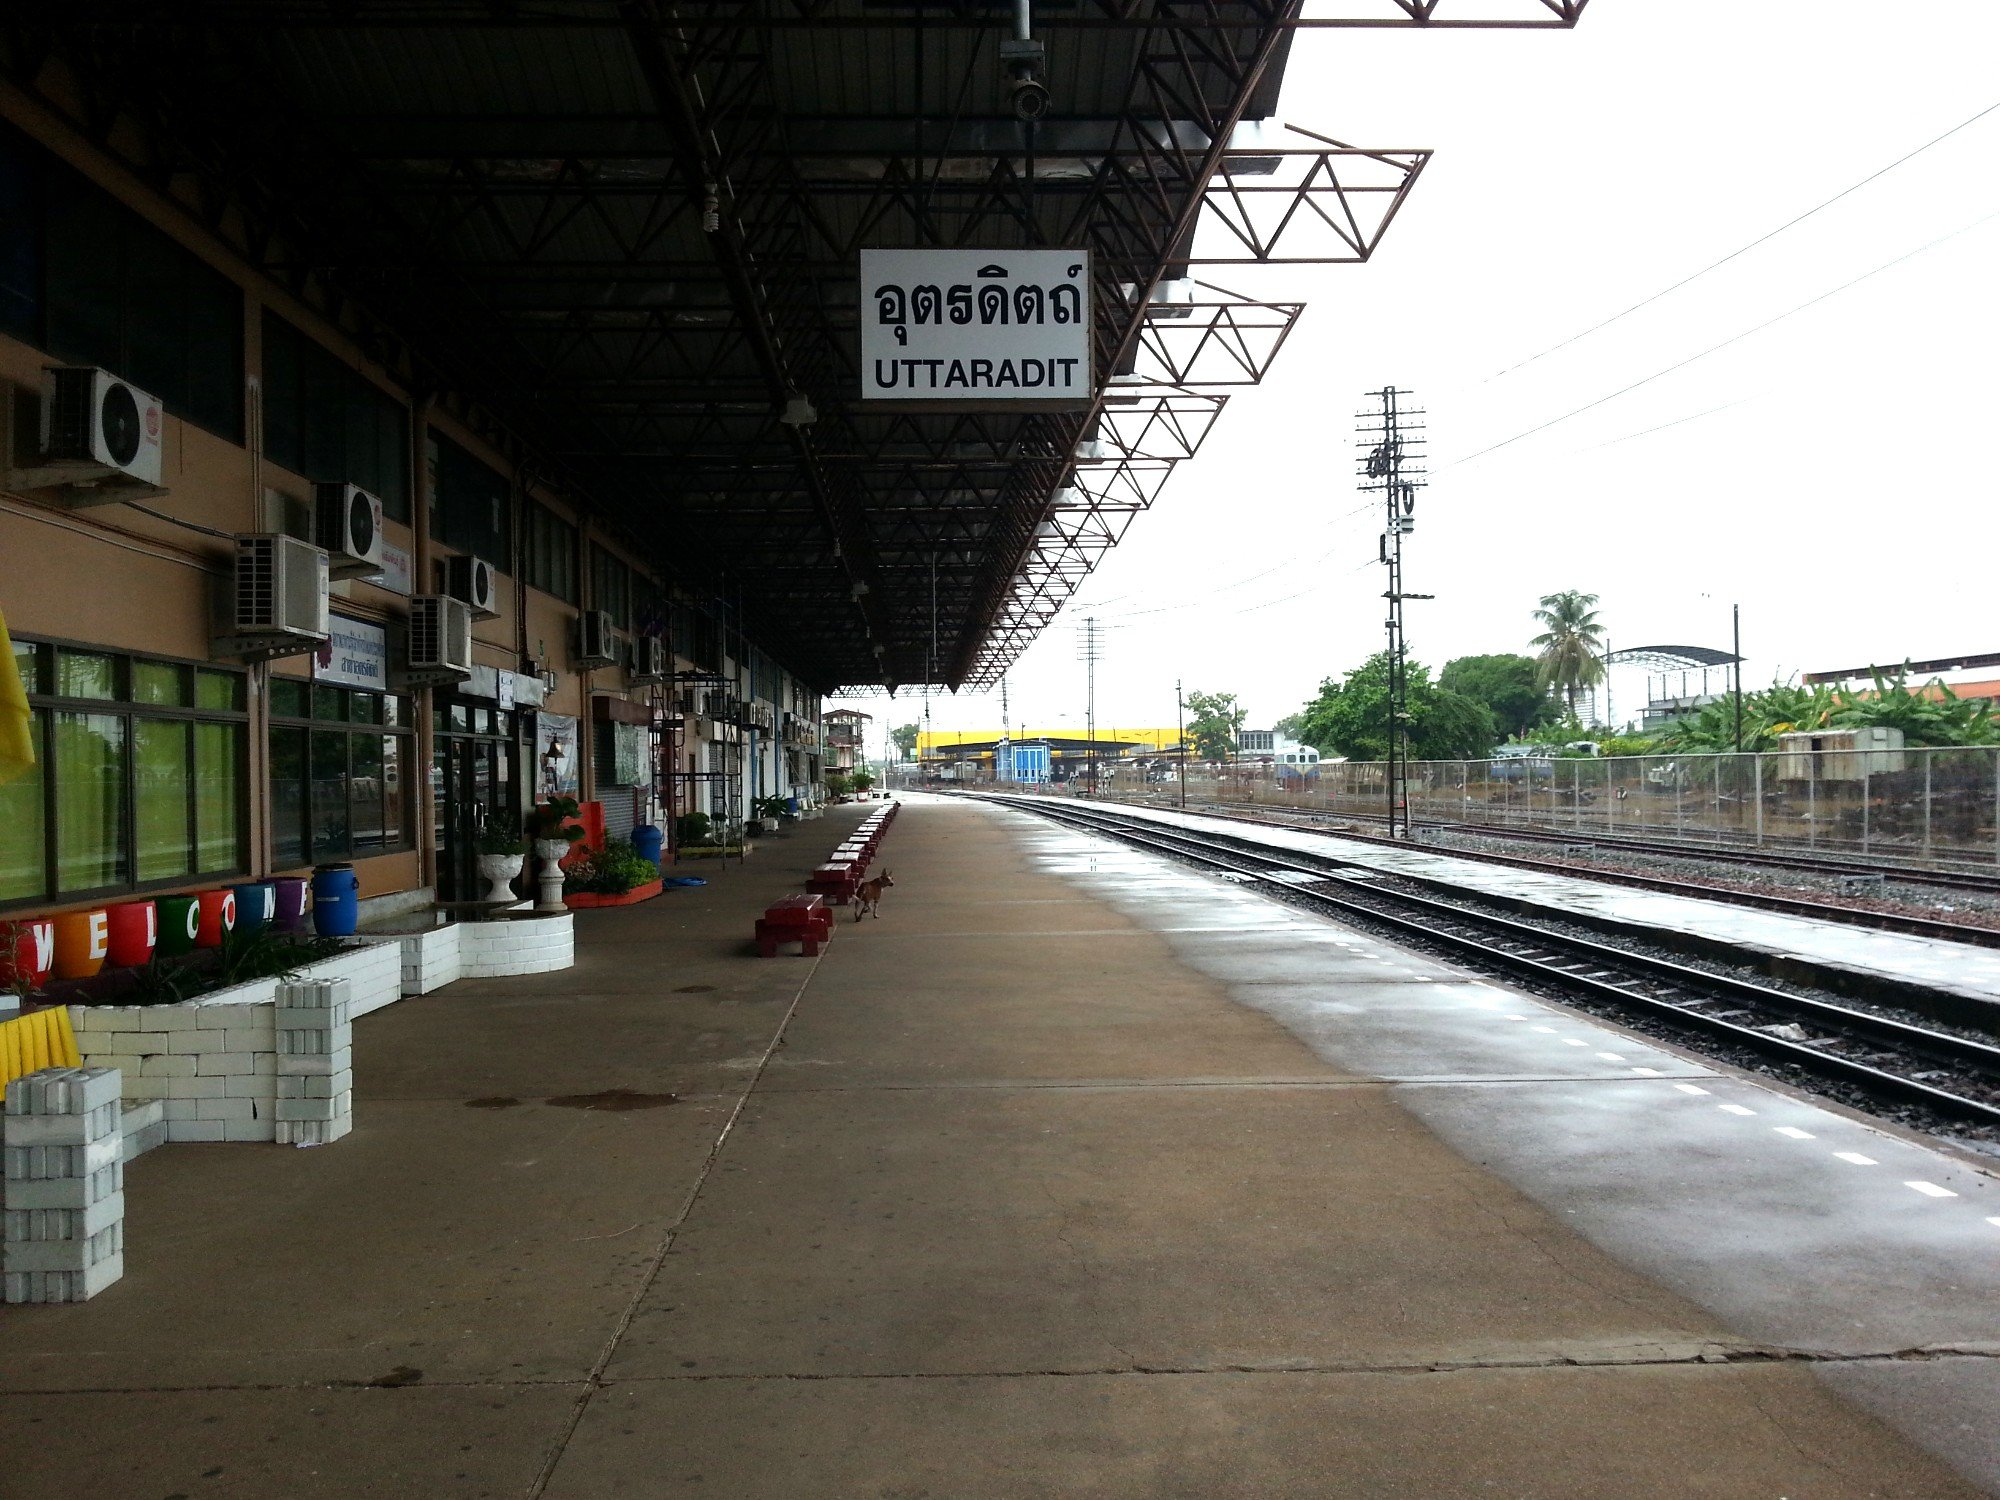 Platform 1 at Uttaradit Railway Station